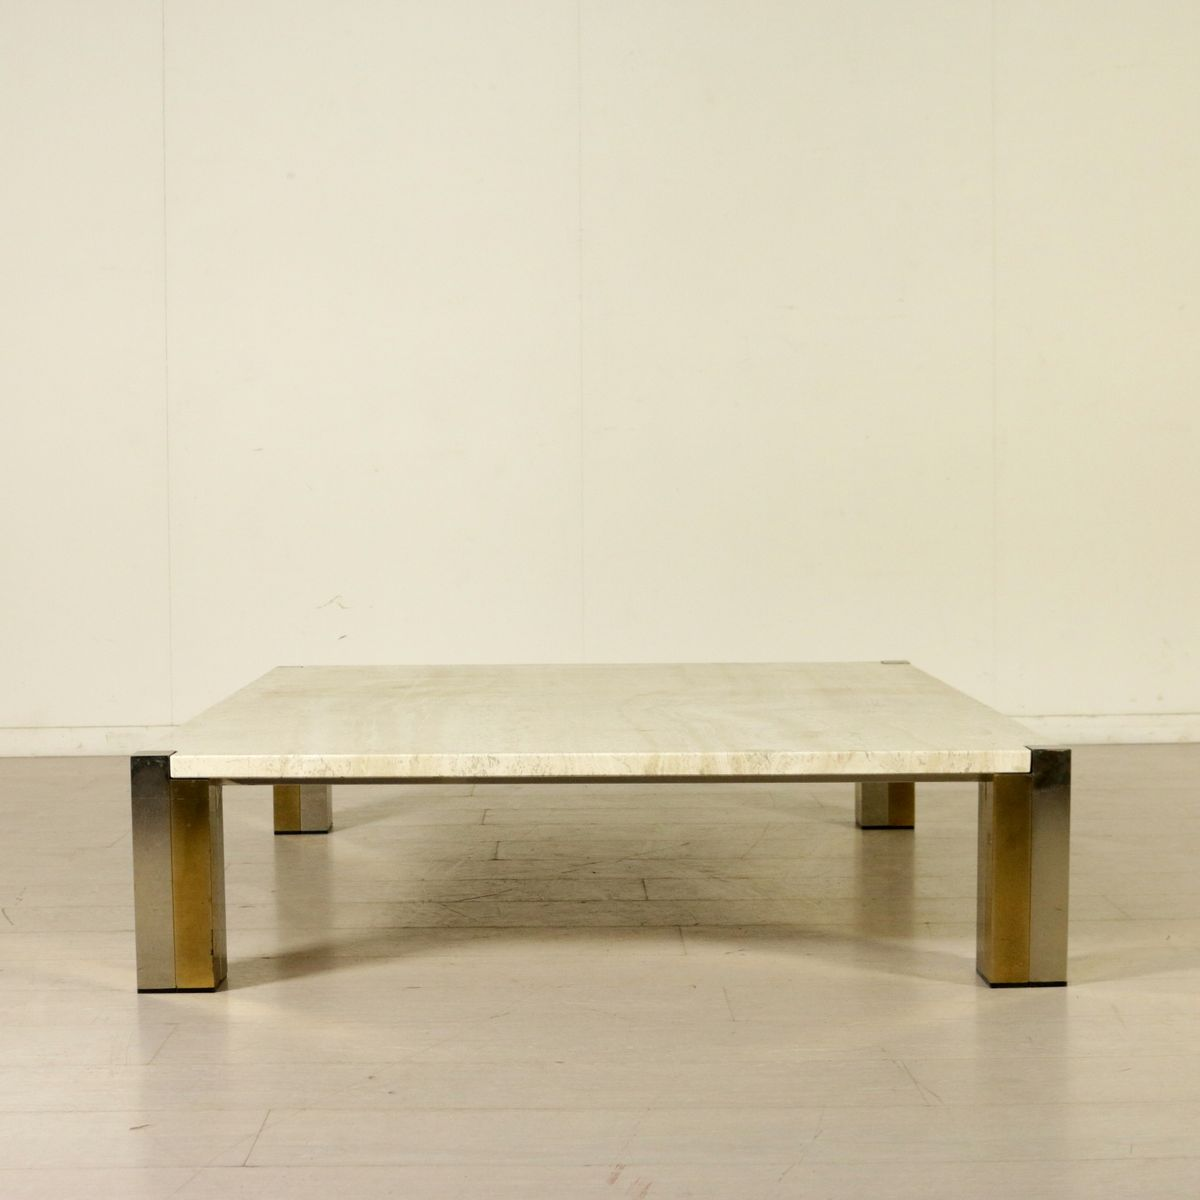 Marble And Steel Coffee Table: Large Marble, Steel, And Brass Coffee Table, 1980s For